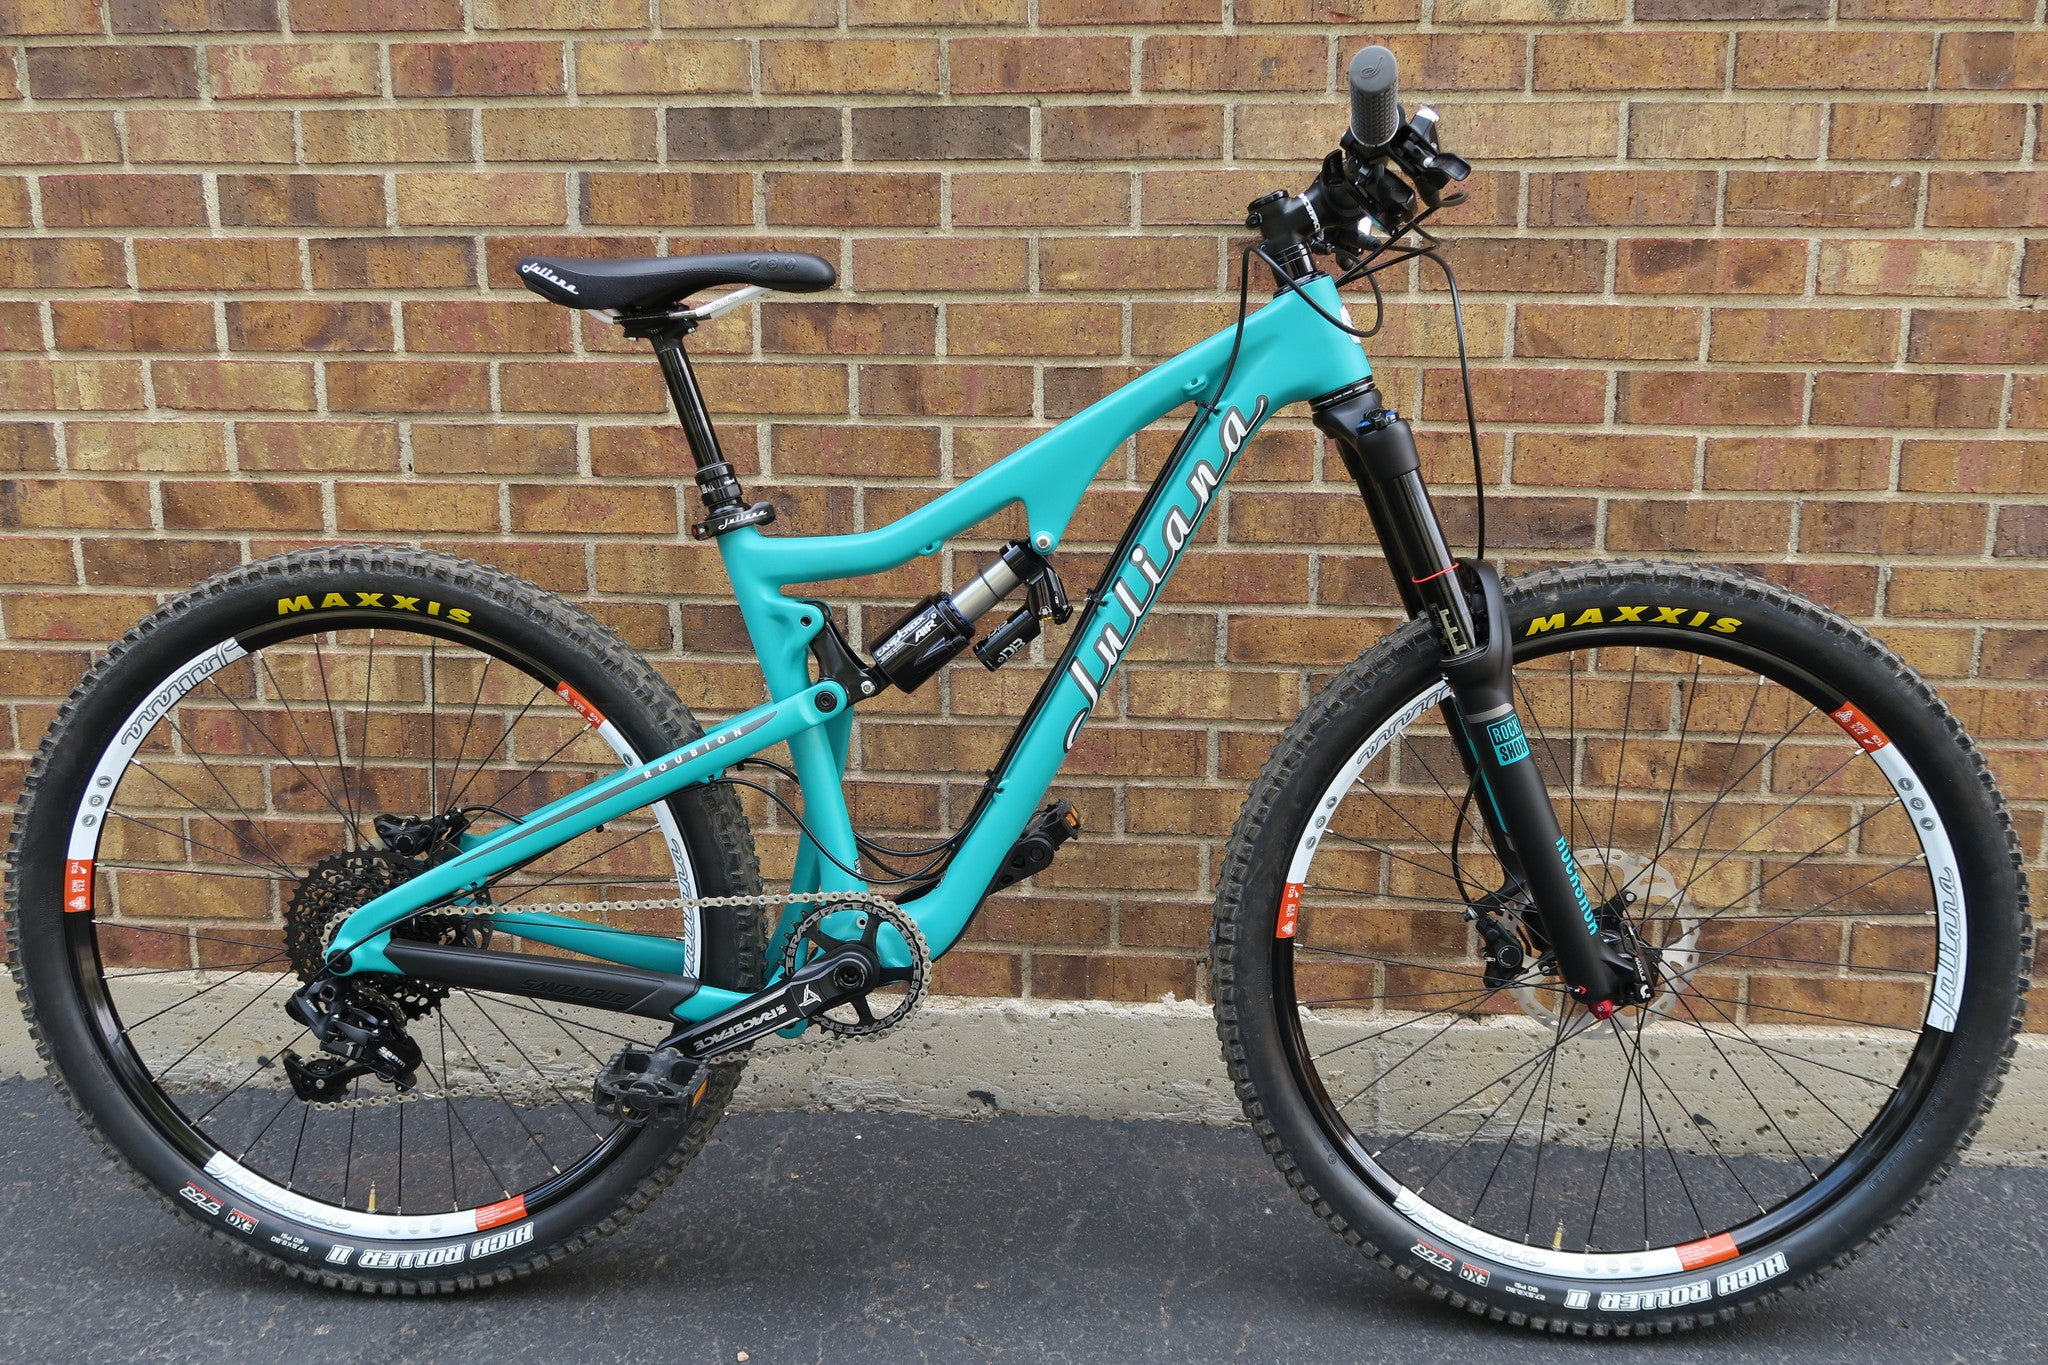 2015 JULIANA ROUBION CARBON CC 27.5